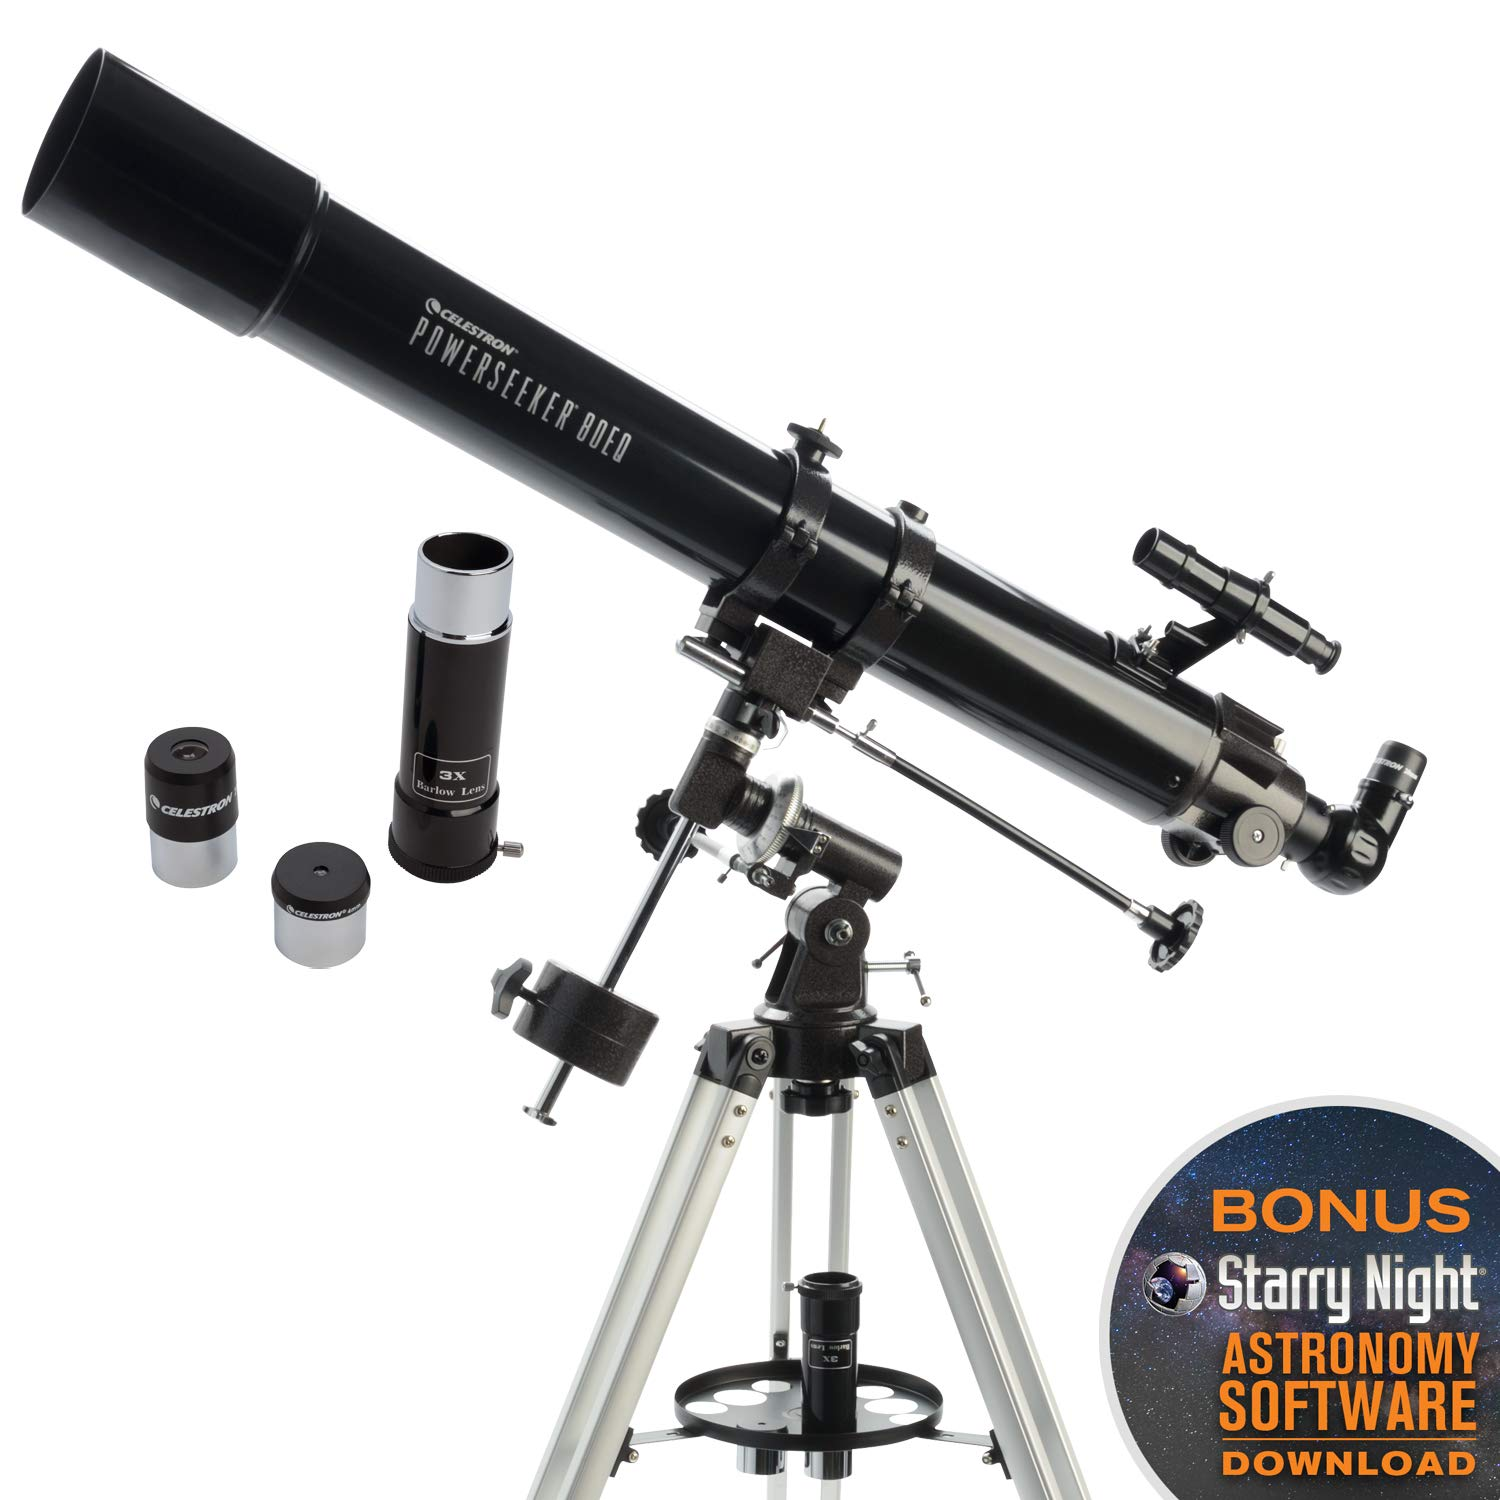 Celestron - PowerSeeker 80EQ Telescope - Manual German Equatorial Telescope for Beginners - Compact and Portable - BONUS Astronomy Software Package - 80mm Aperture by Celestron